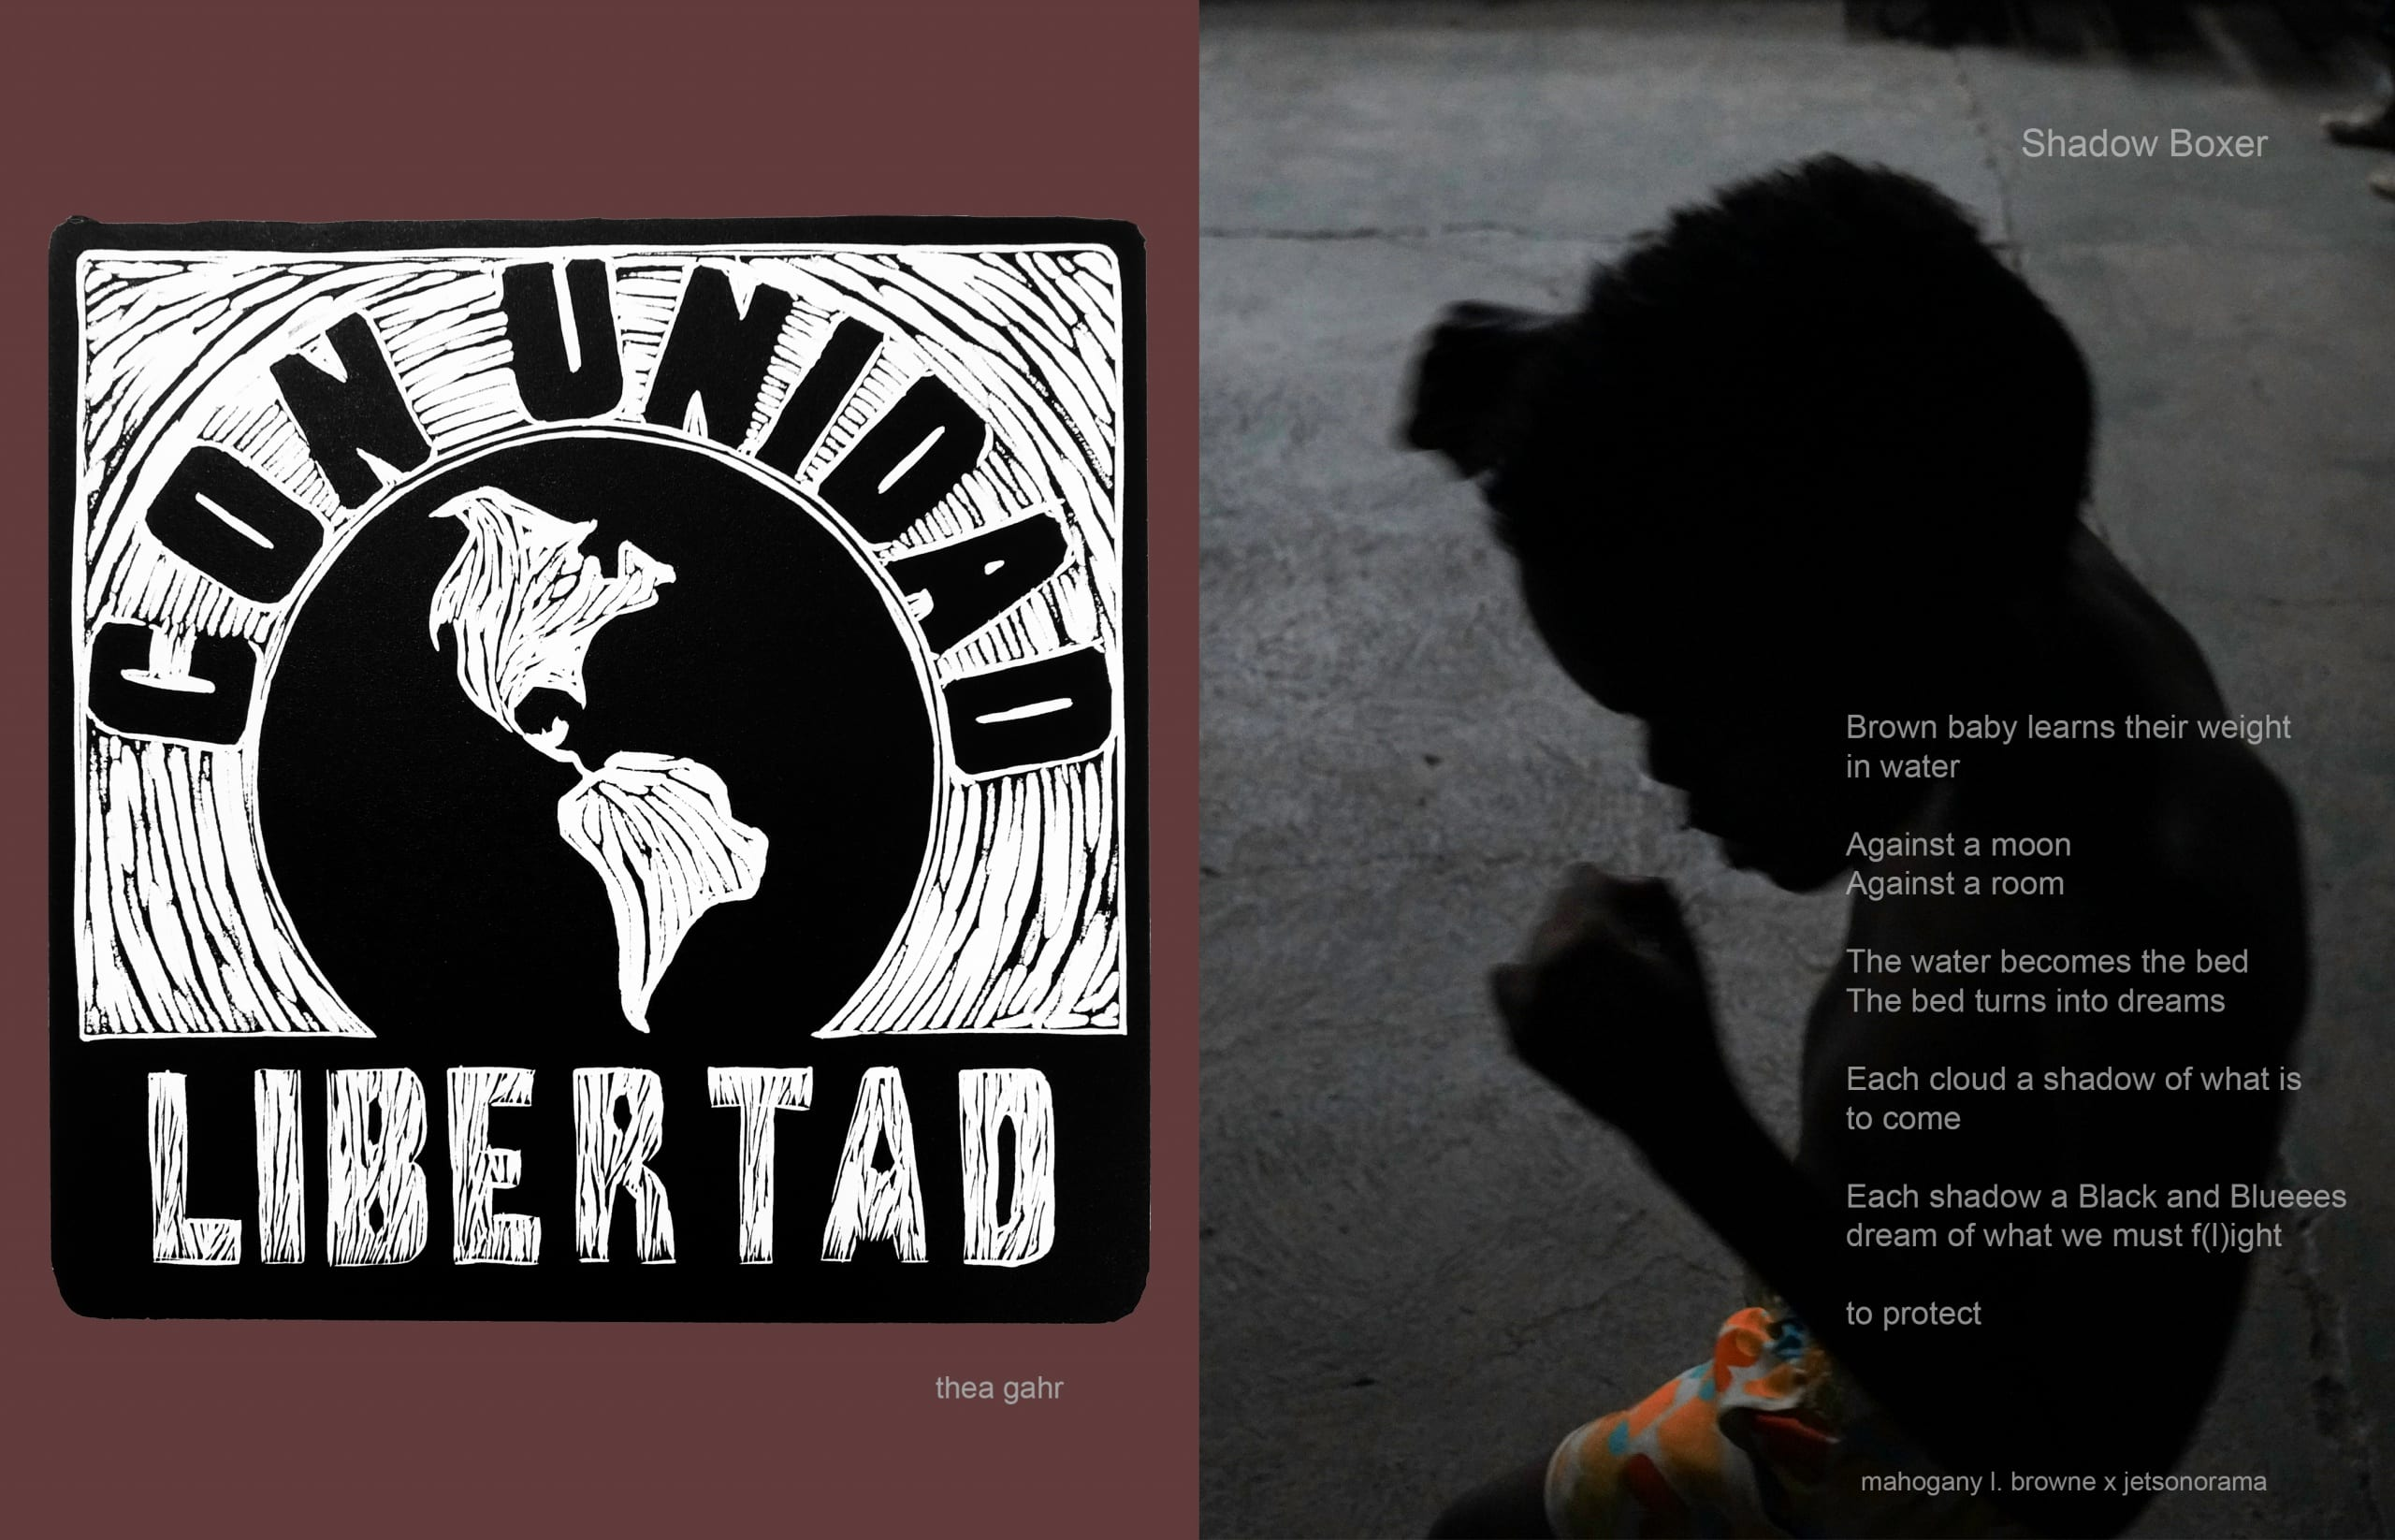 """To left, black and white woodcut print of the globe with the words """"Con Unidad"""" over it and """"Libertad"""" under it; to right, color photograph of very young boy in silhouette who appears to be throwing a boxing combination, overlaid with a poem"""